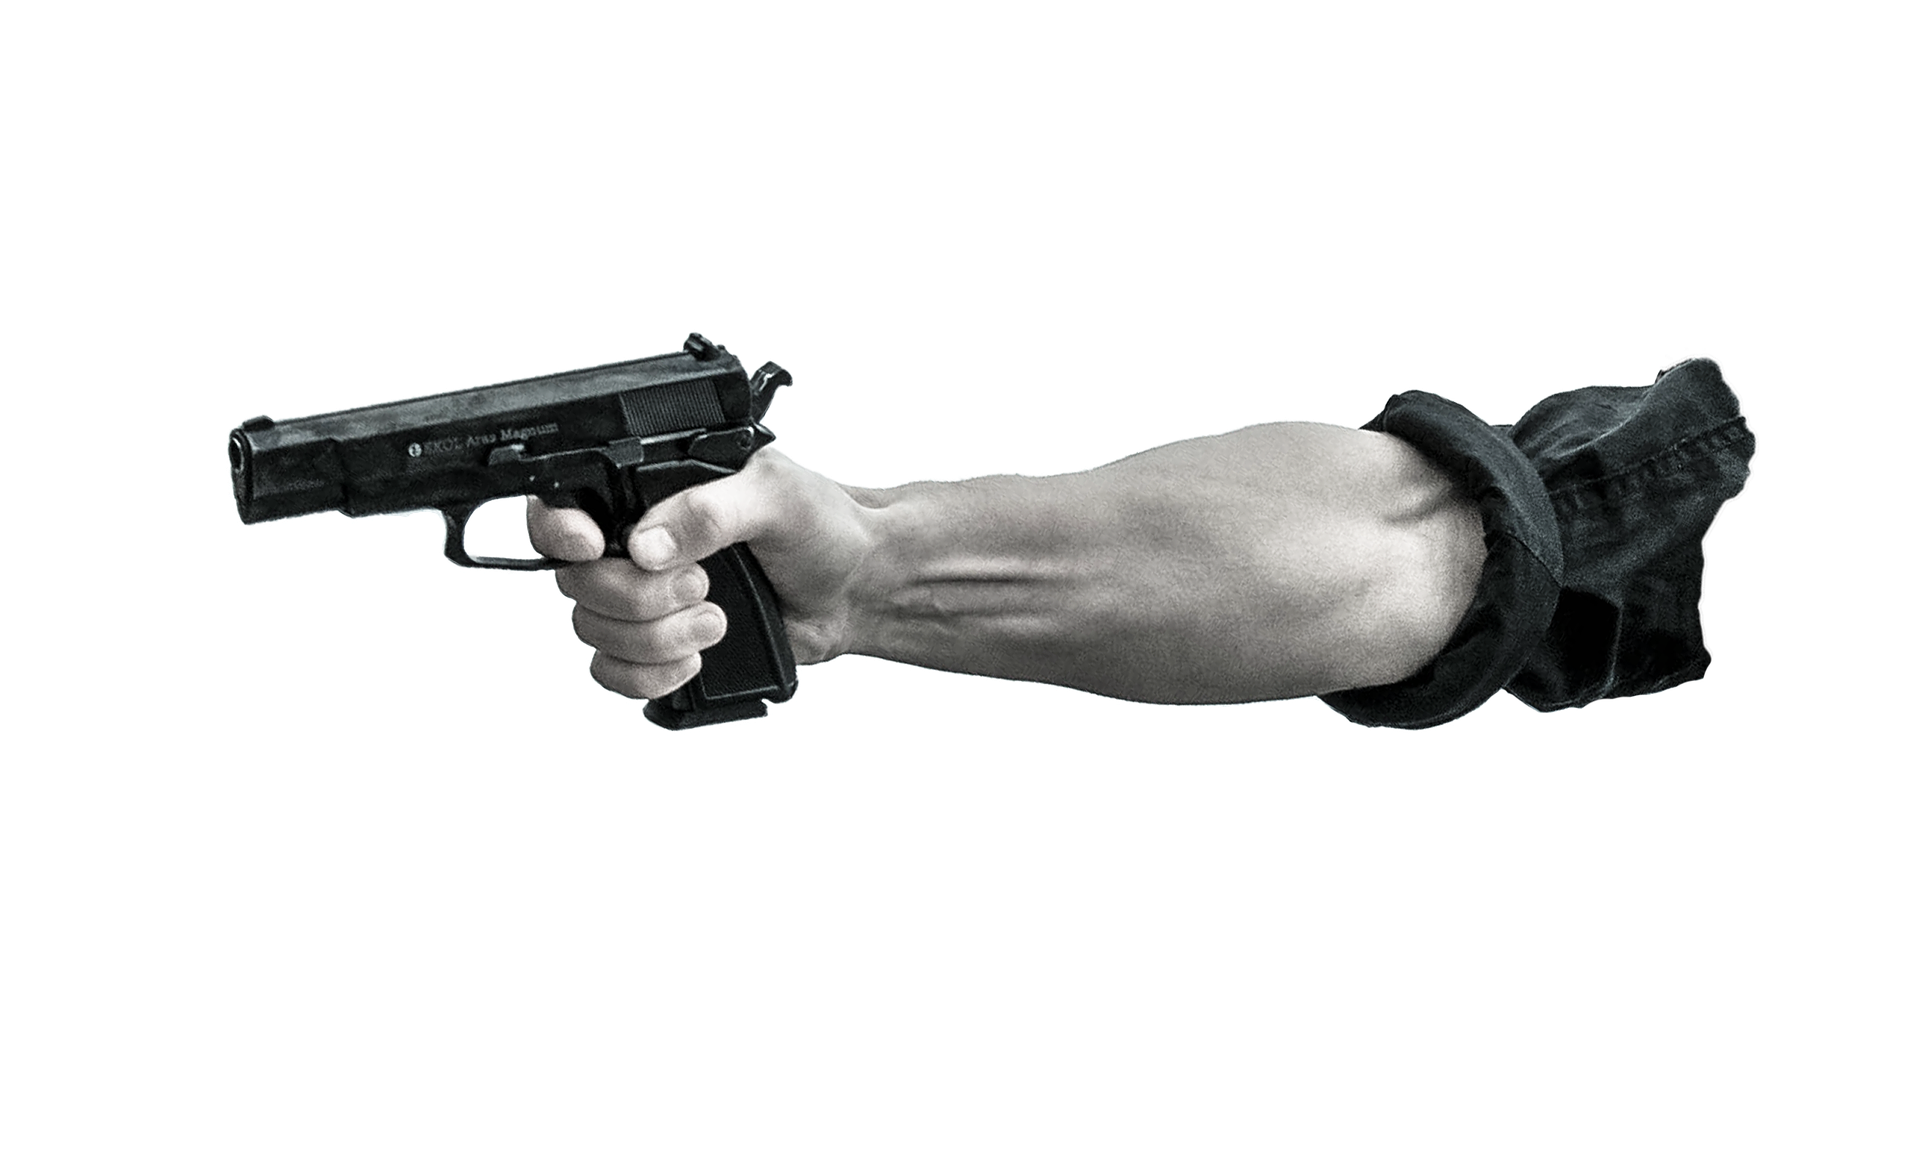 pointing-gun-1632373_1920.png